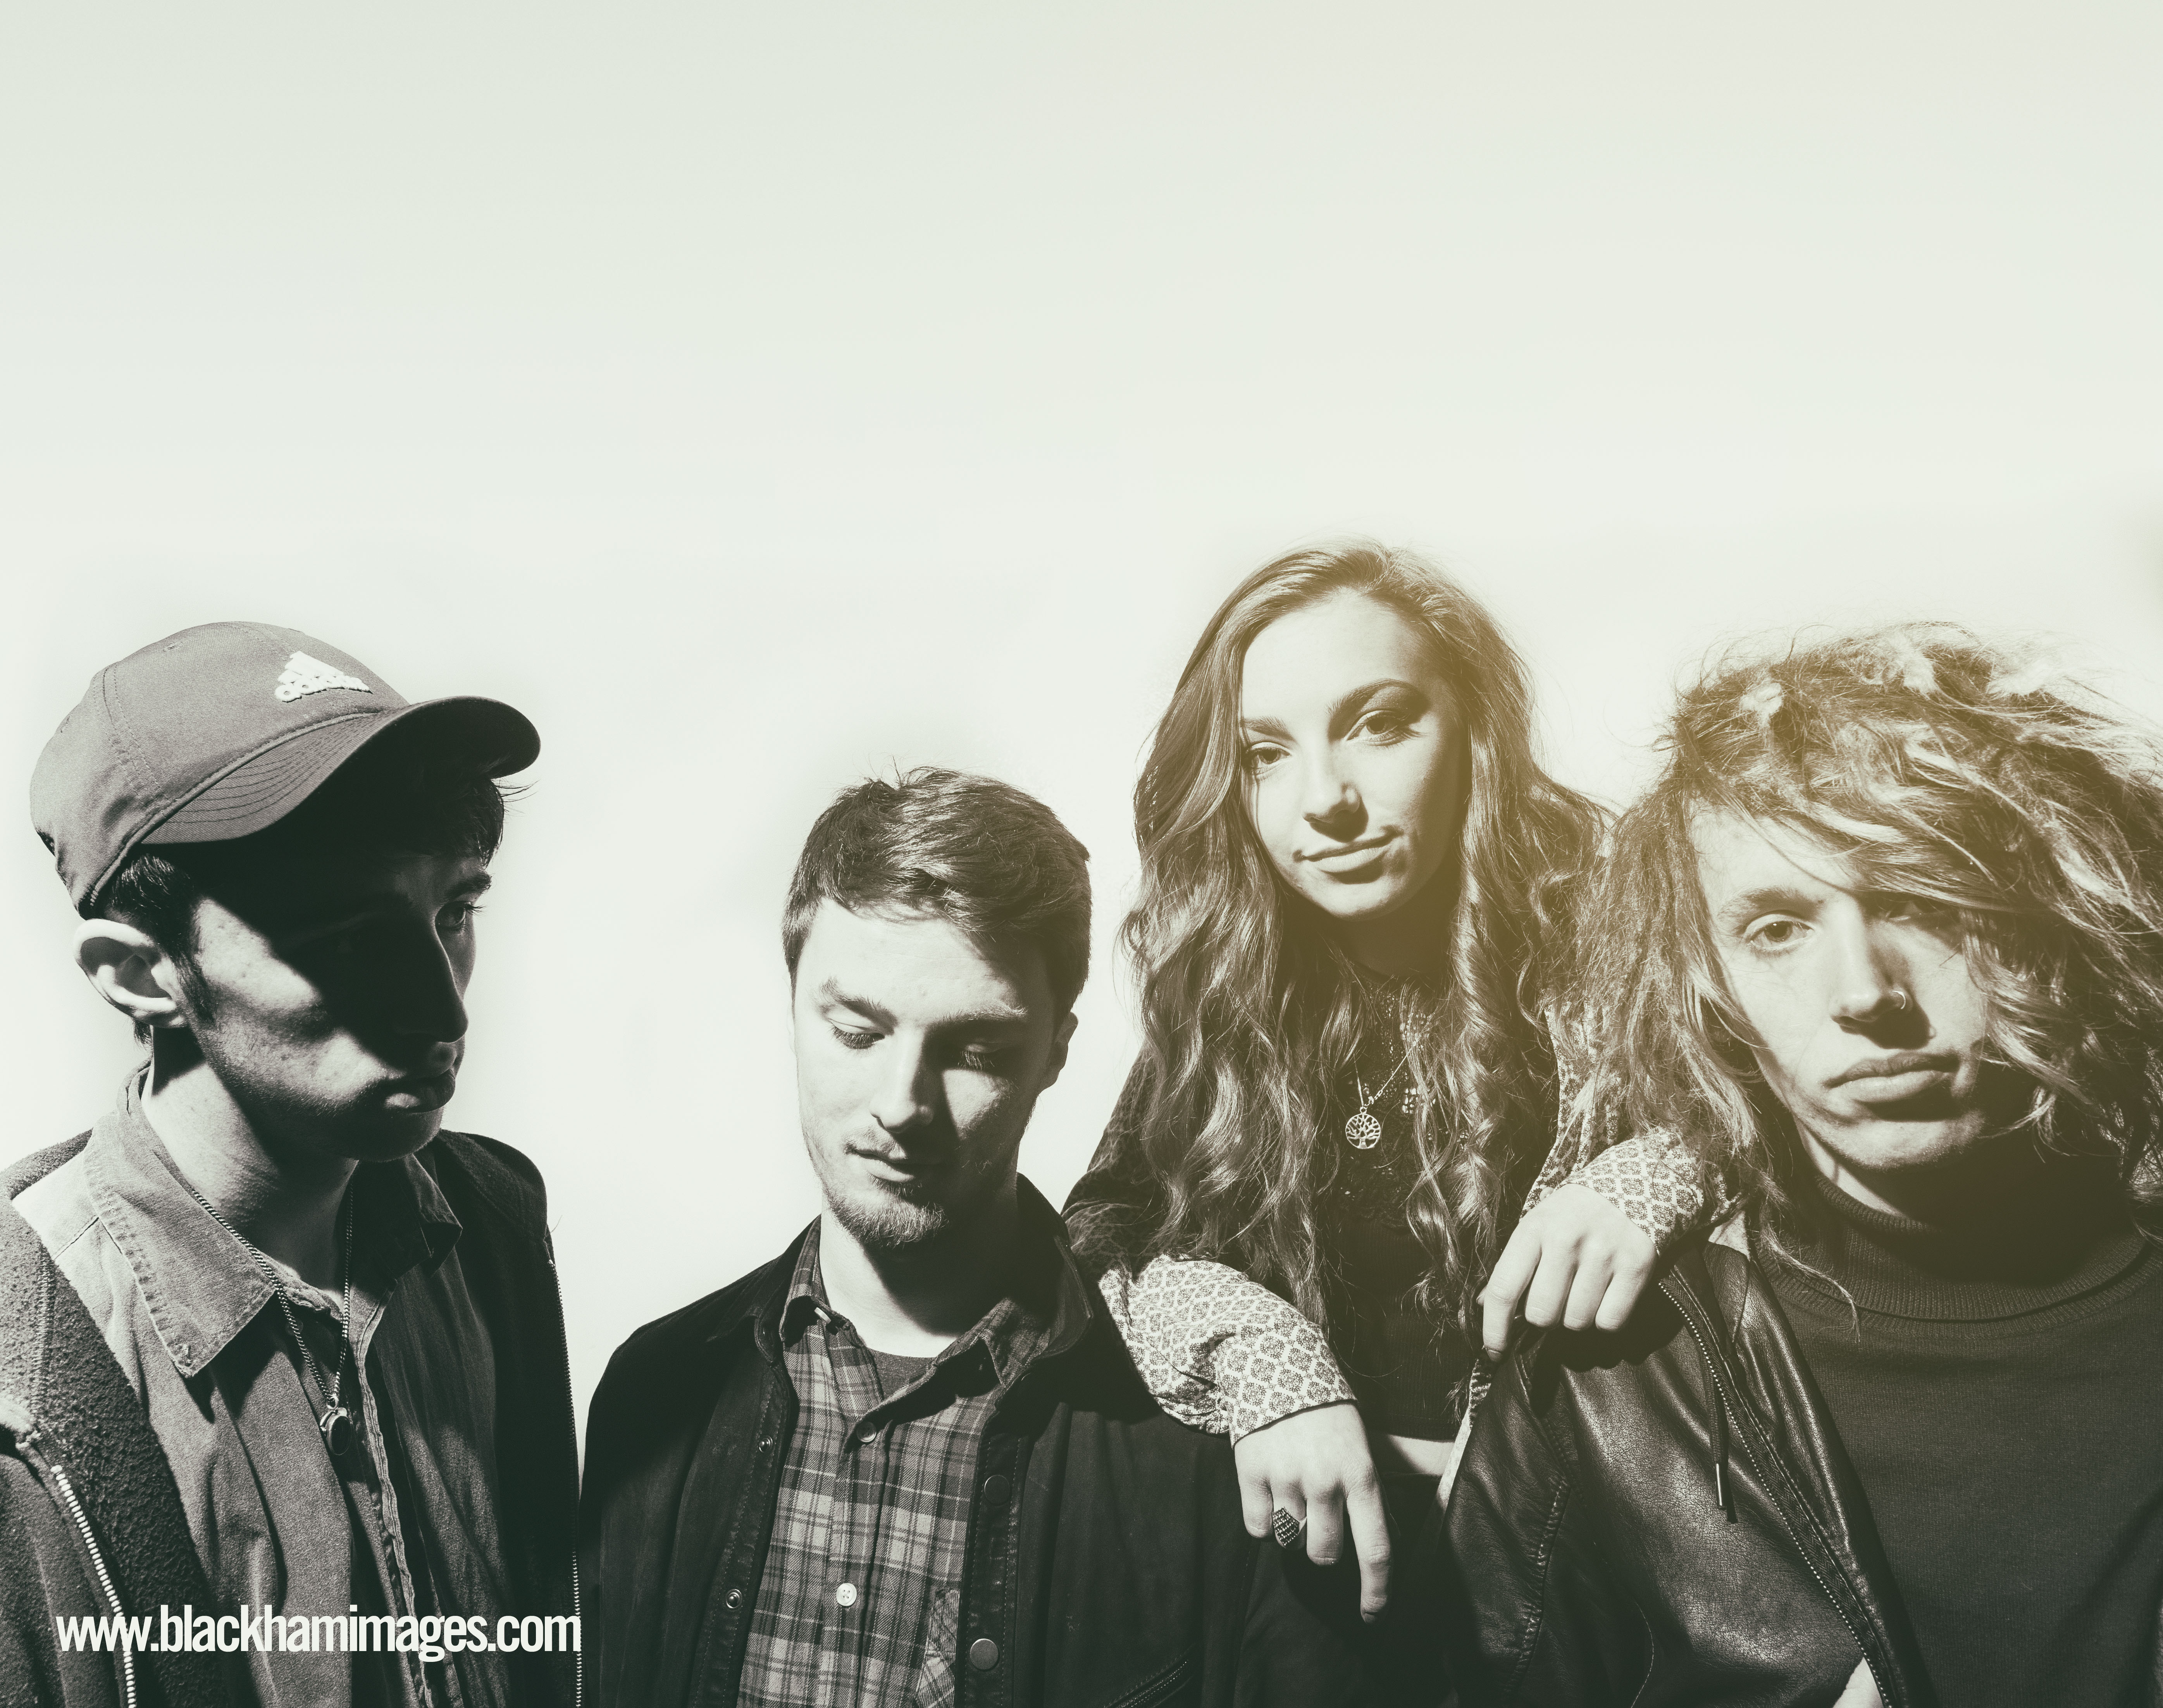 sophie and the giants-wm